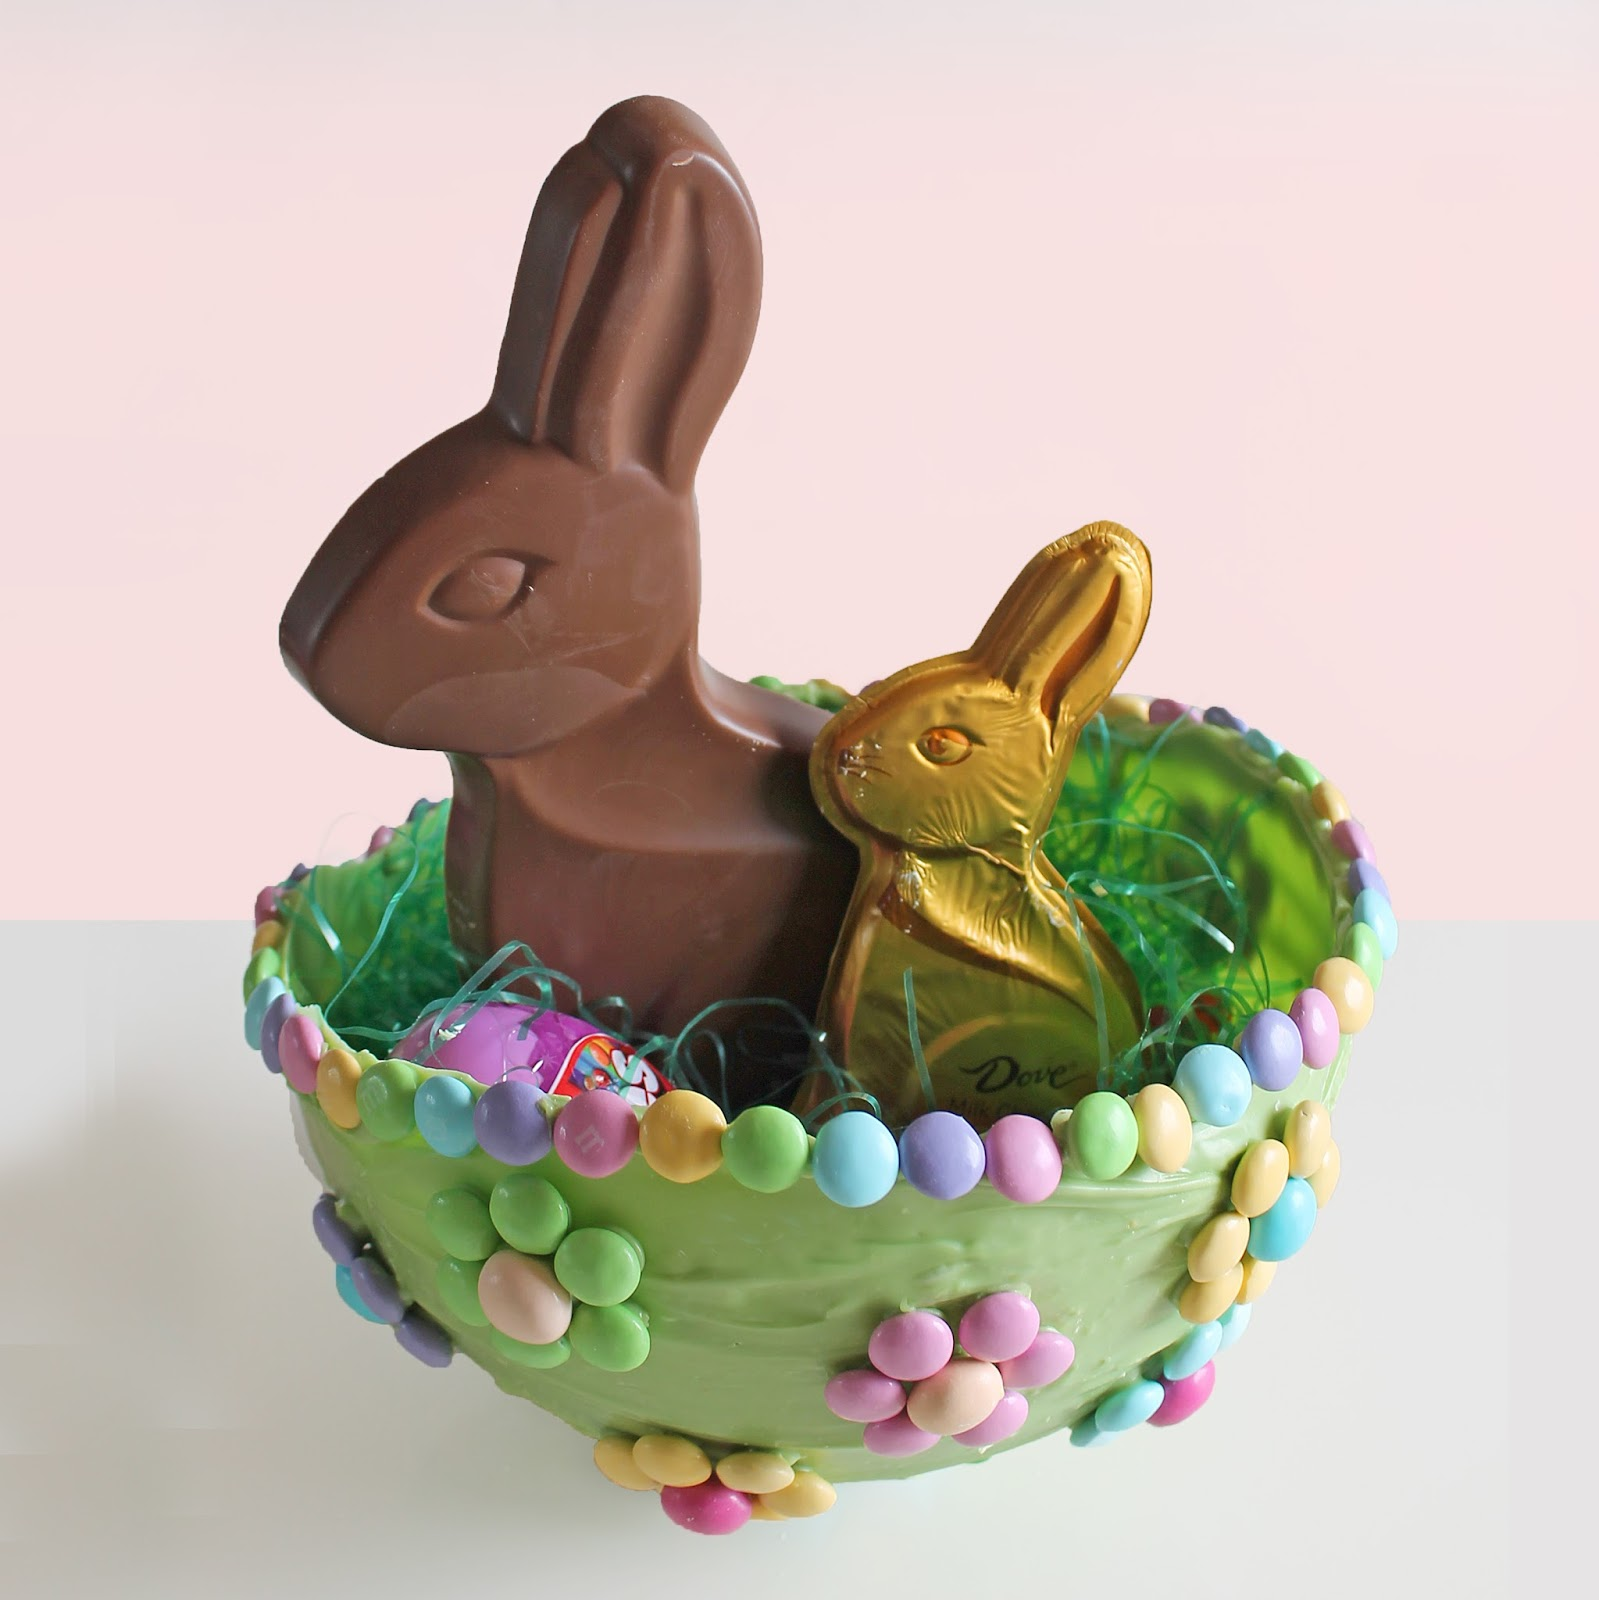 DIY Edible Easter Basket